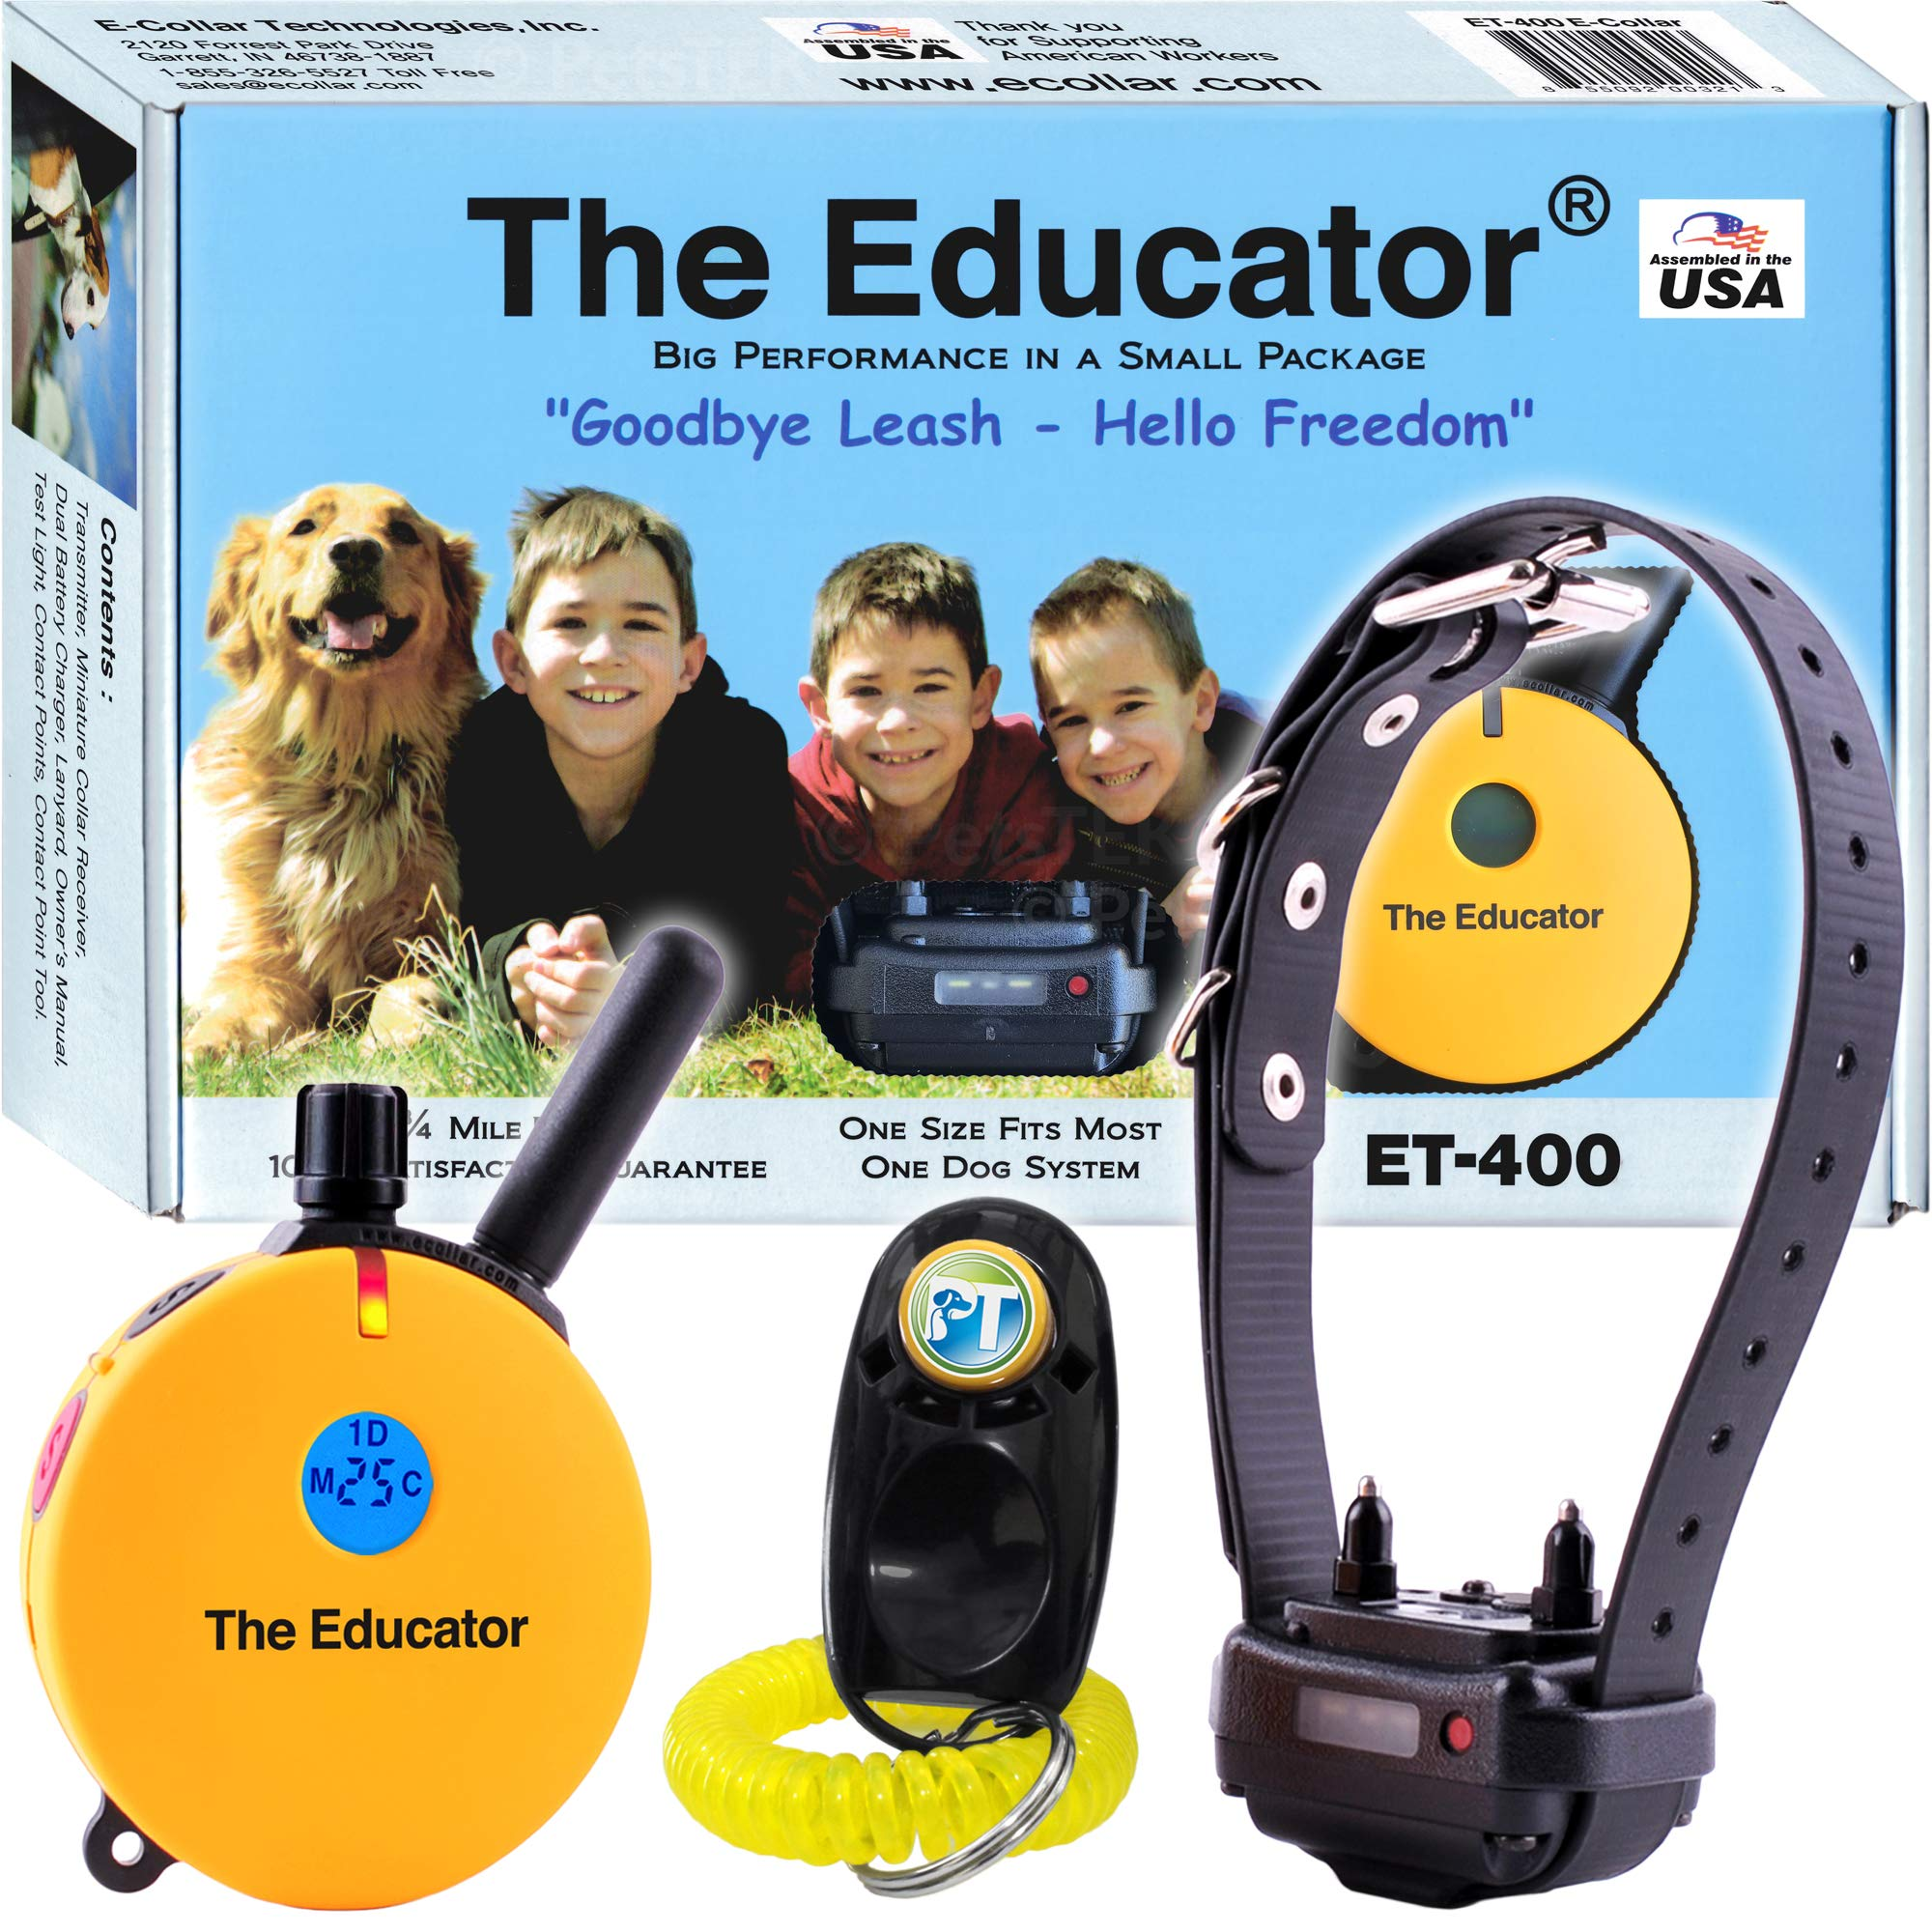 Bundle of 2 Items - E-Collar - ET-400 - 3/4 Mile Rechargeable Remote Waterproof Trainer Educator - Static, Vibration and Sound Stimulation Collar with PetsTEK Dog Training Clicker by Ecollar